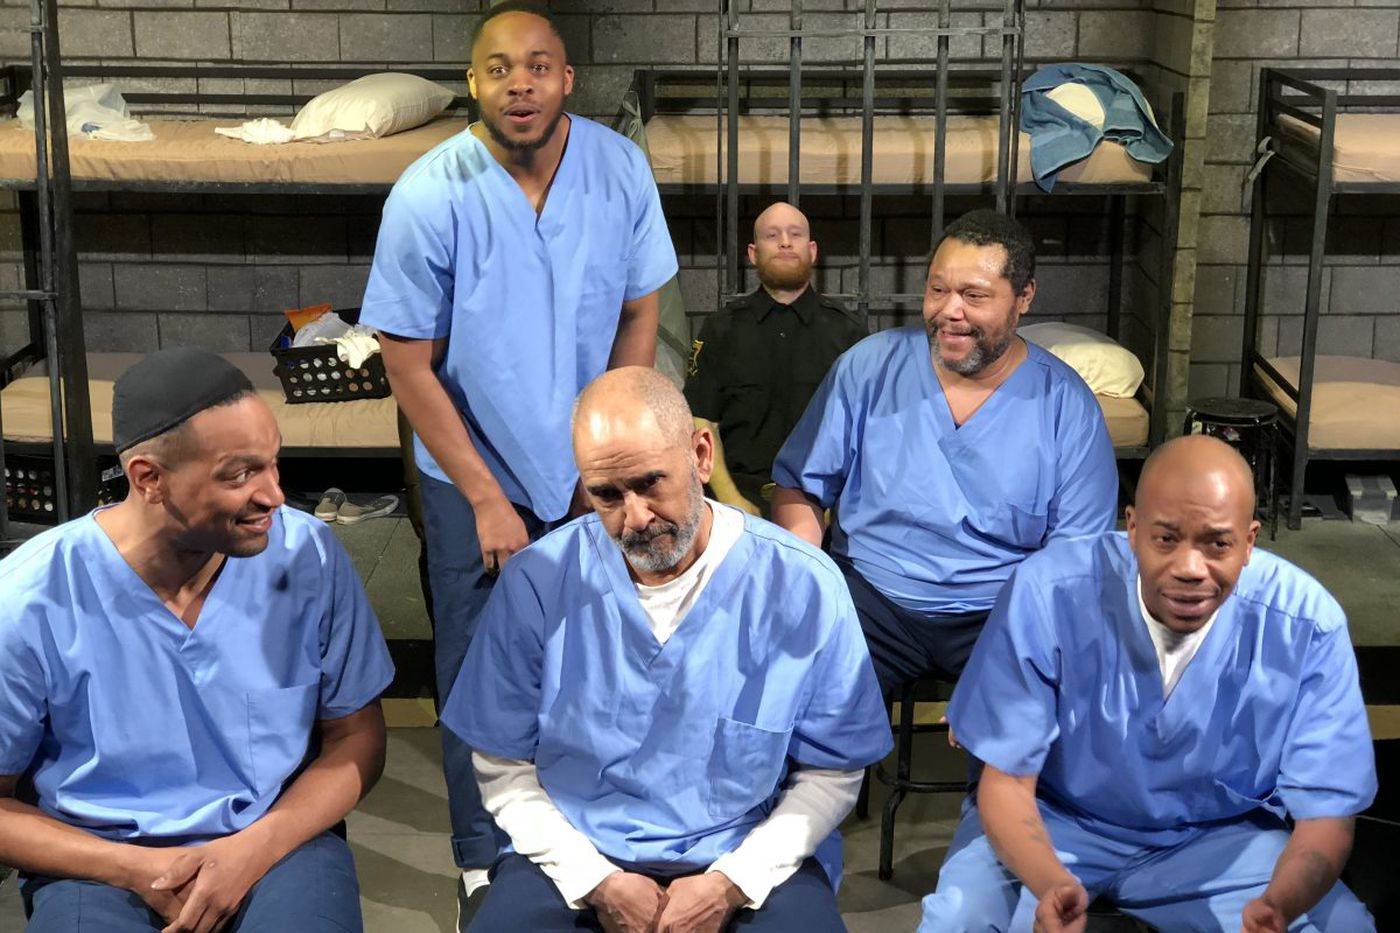 Arden's 'V to X' is a captivating, terrifying look at prison life